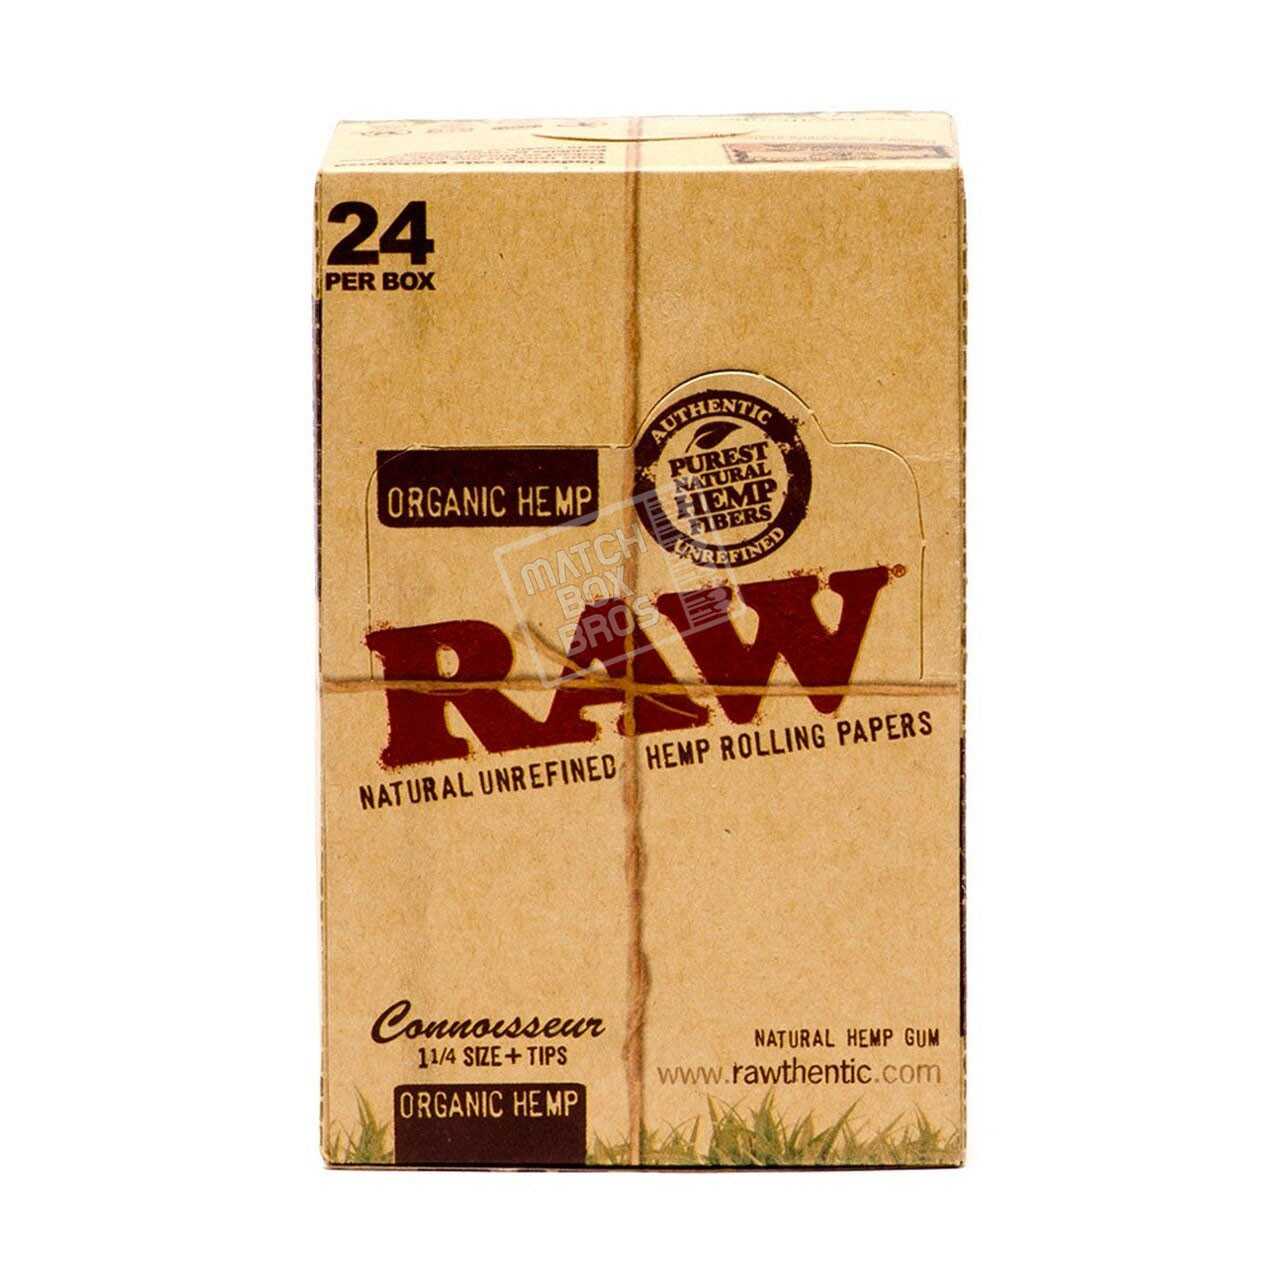 RAW Organic Hemp Connoisseur 1 1/4 Paper + Tips box